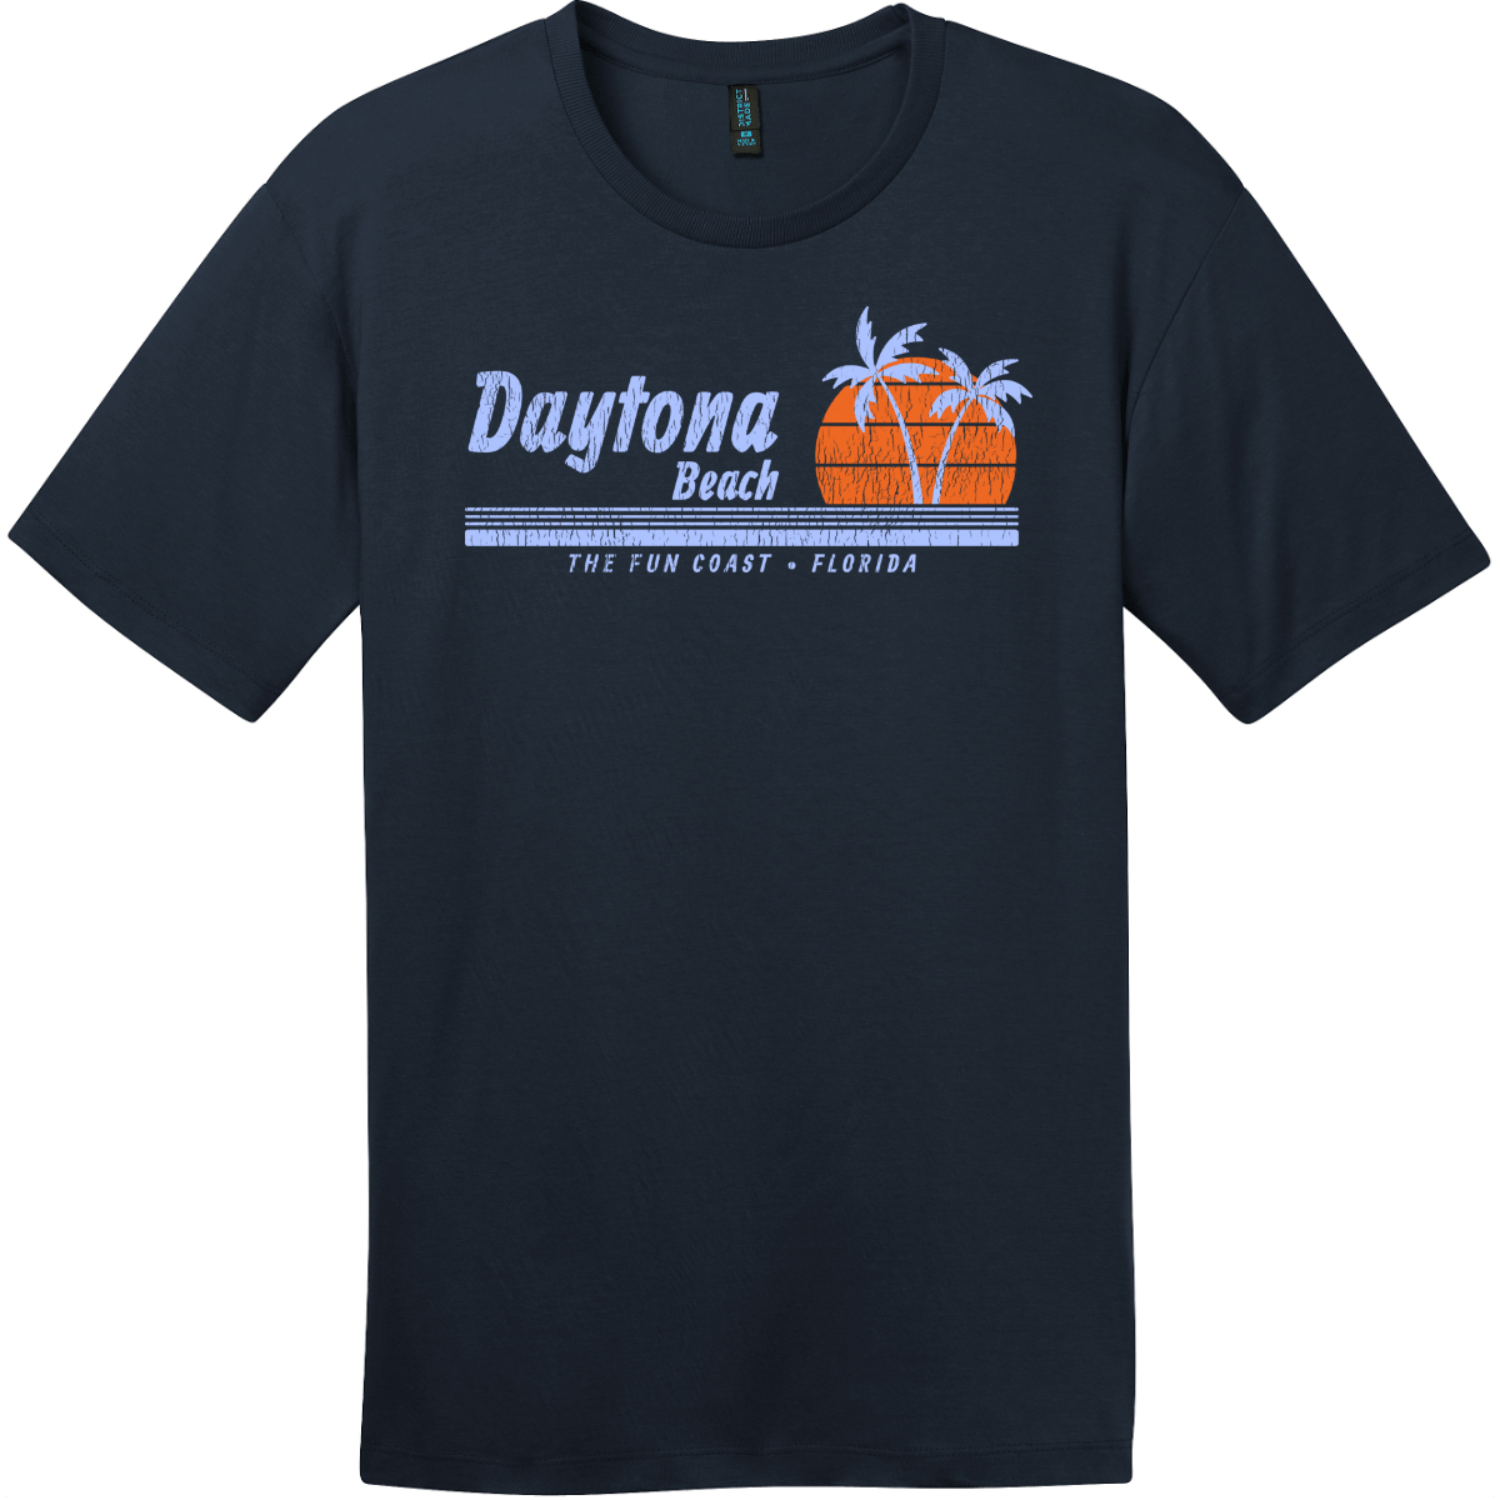 Daytona Beach Florida Fun Coast T-Shirt New Navy District Perfect Weight Tee DT104